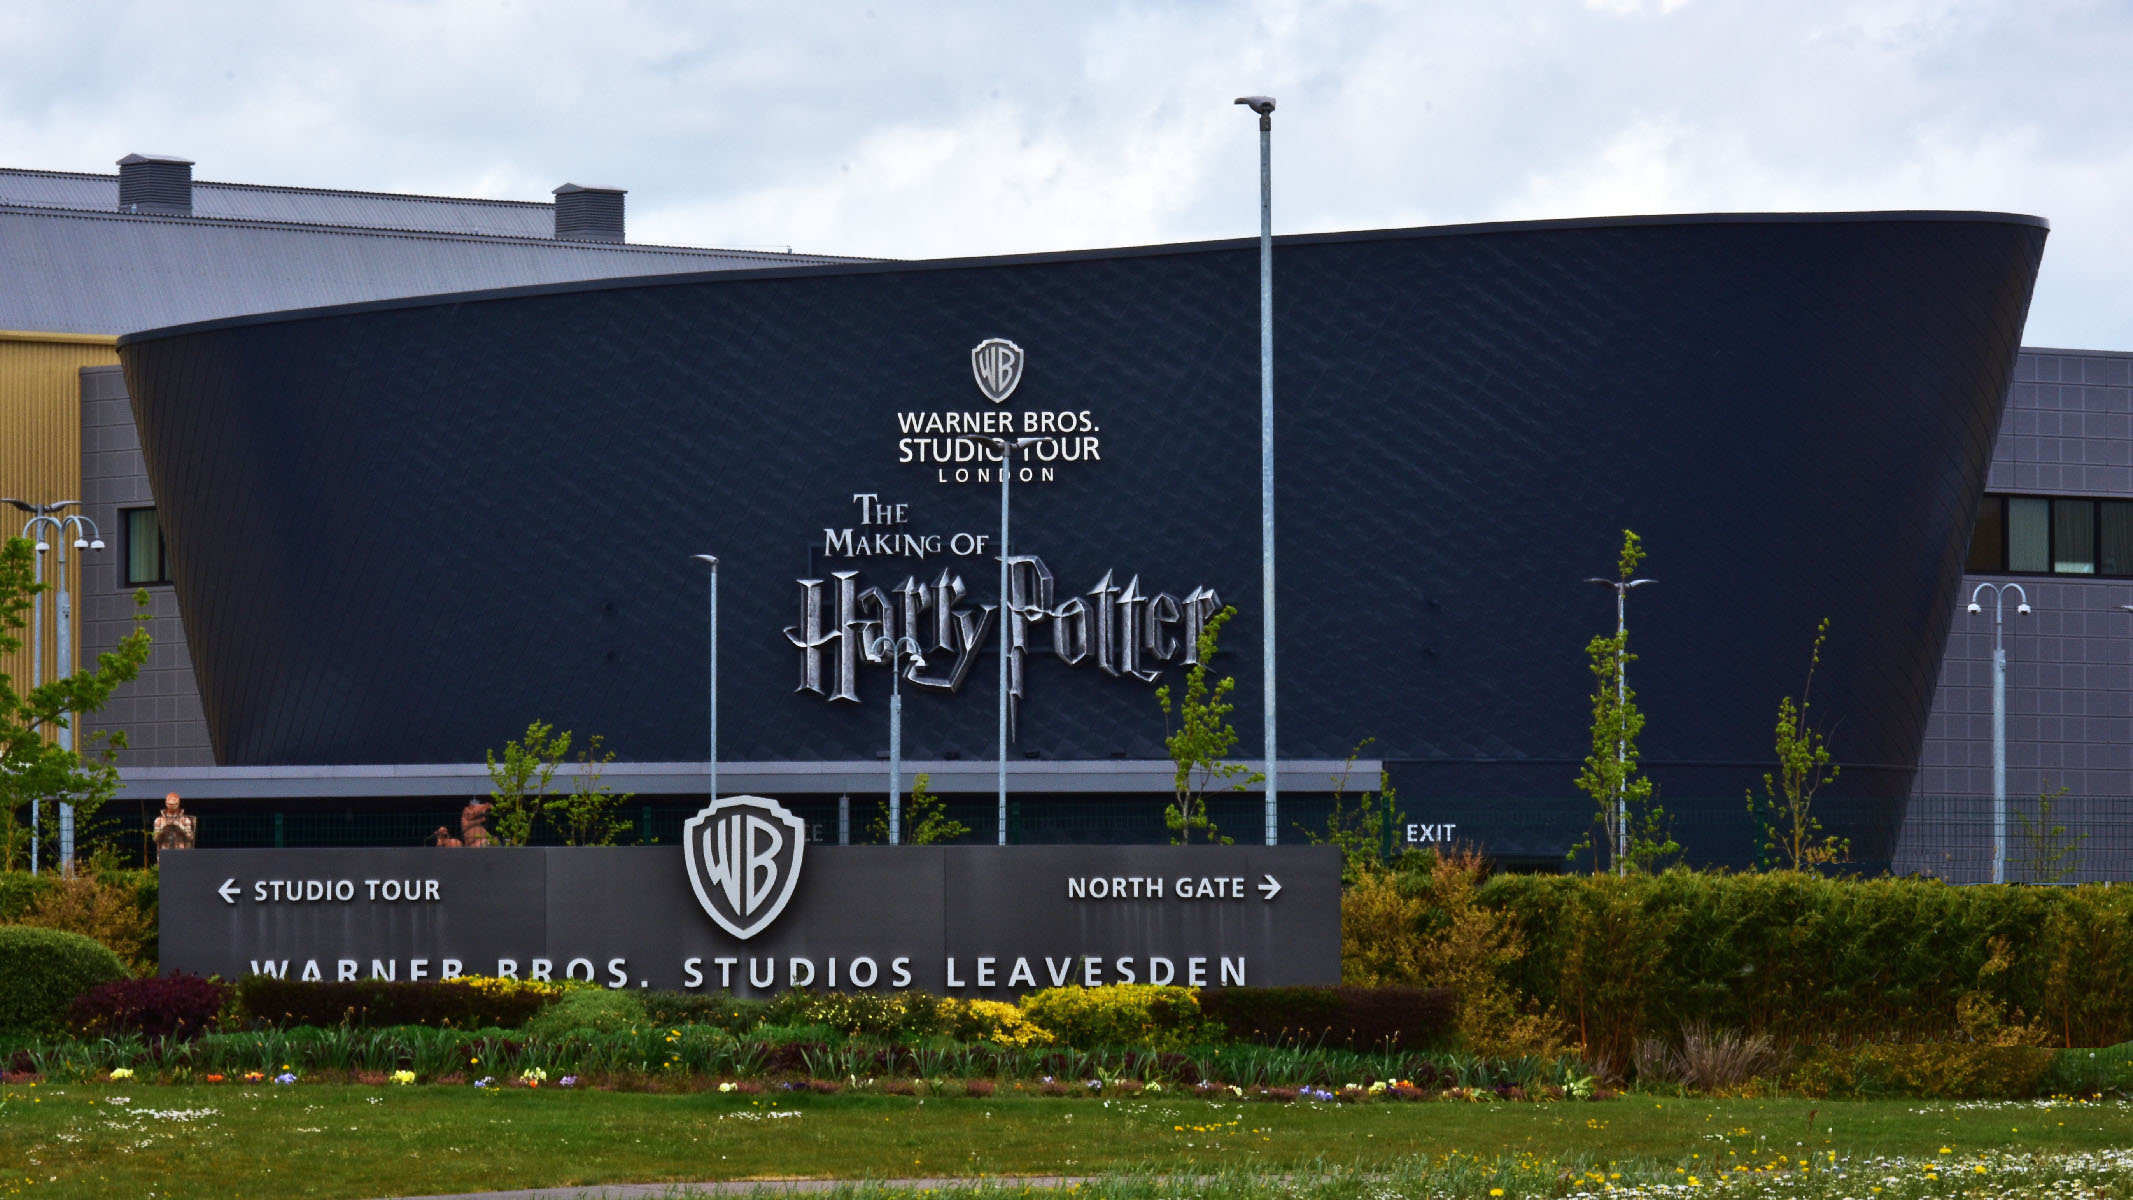 On the same day as the NEW Harry Potter Tour Ticket office was being set to open.